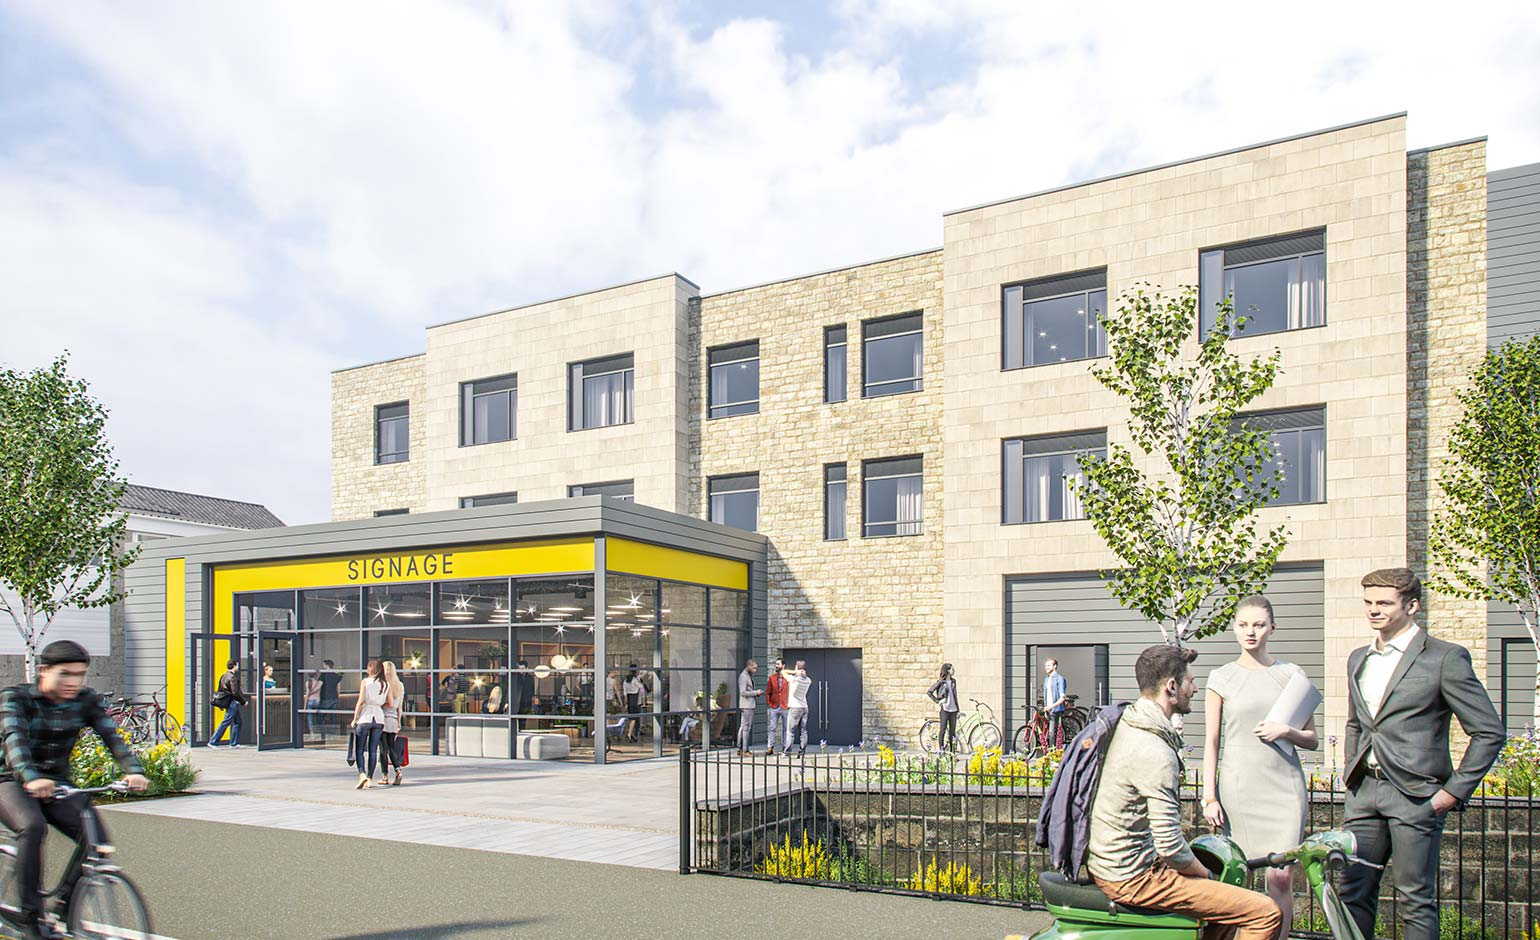 Online consultation launched on co-living plans for Regency Laundry site